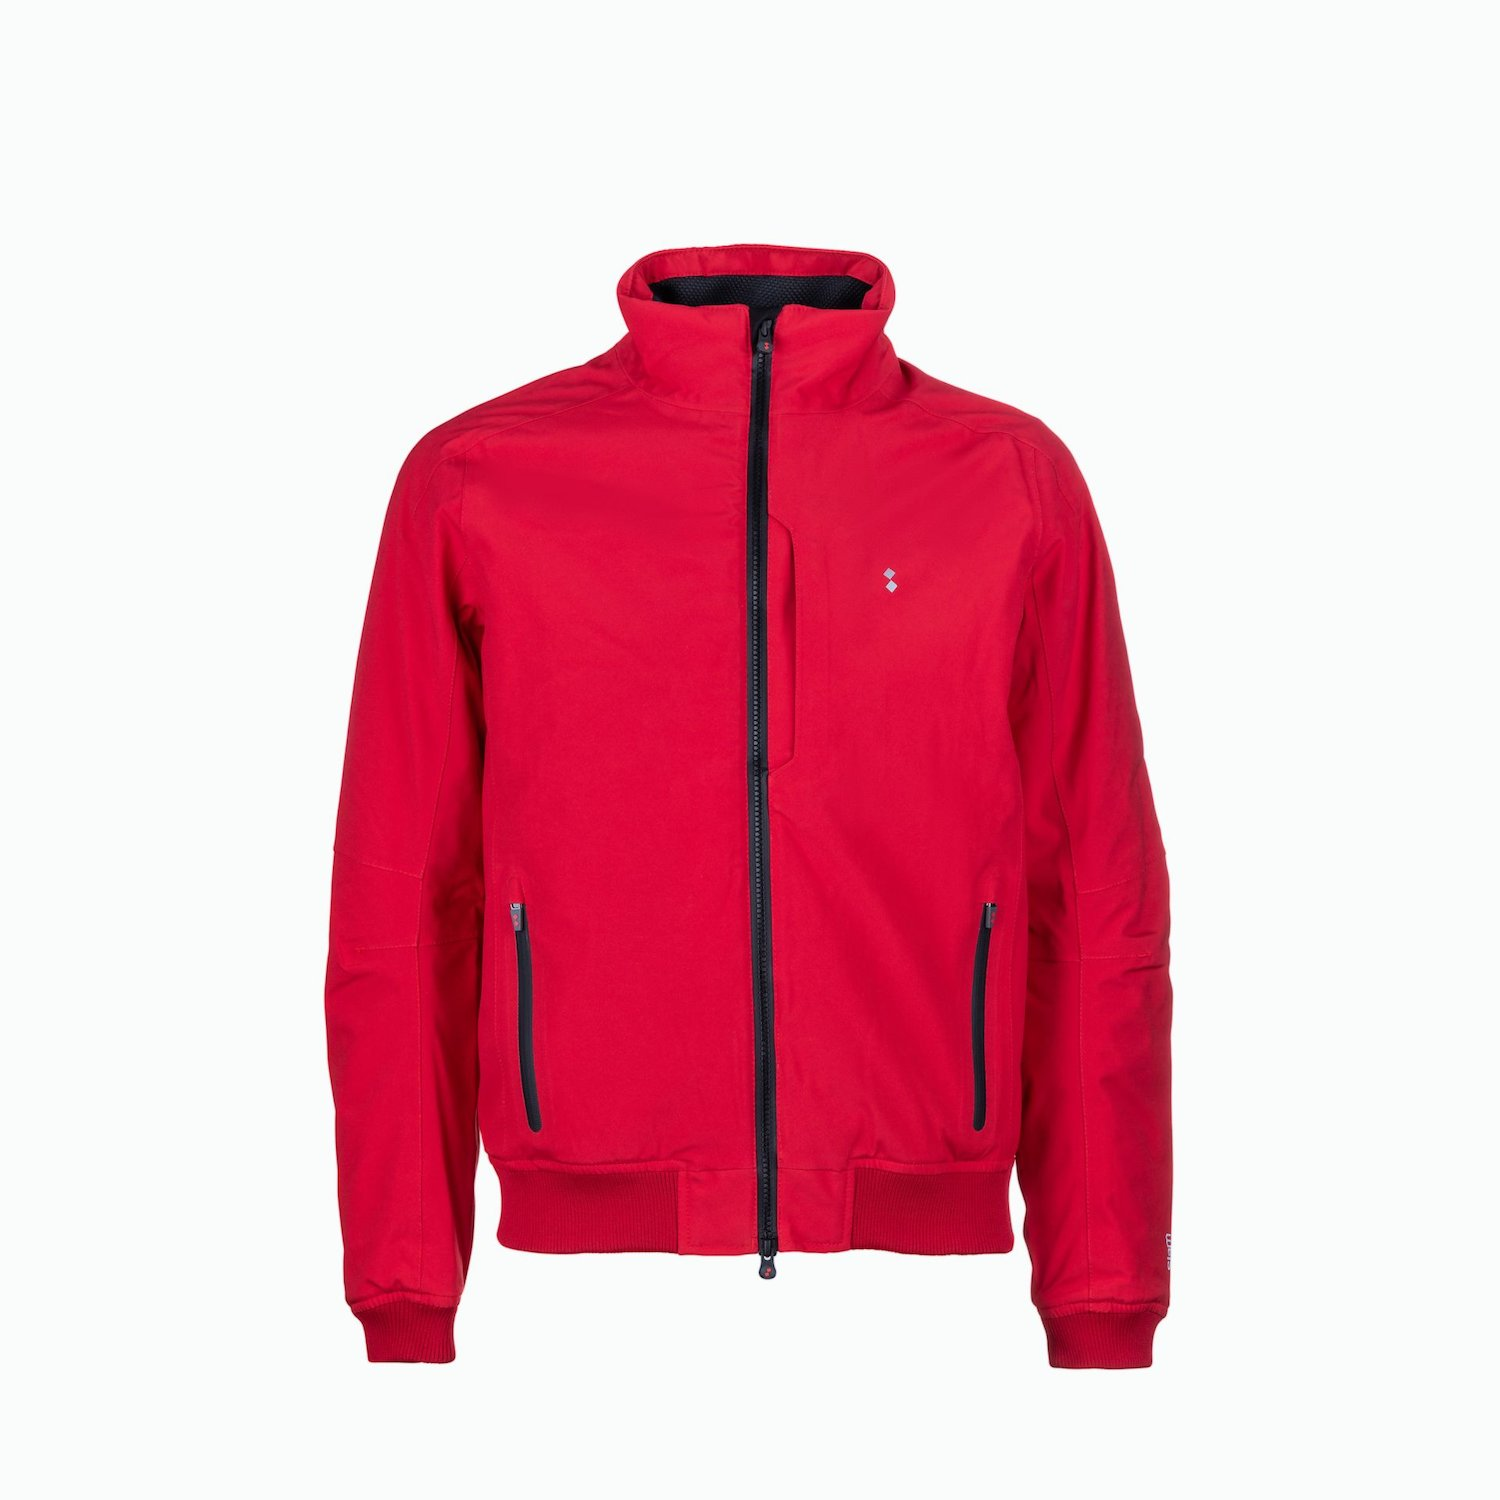 New Sheen jacket - Chili Red